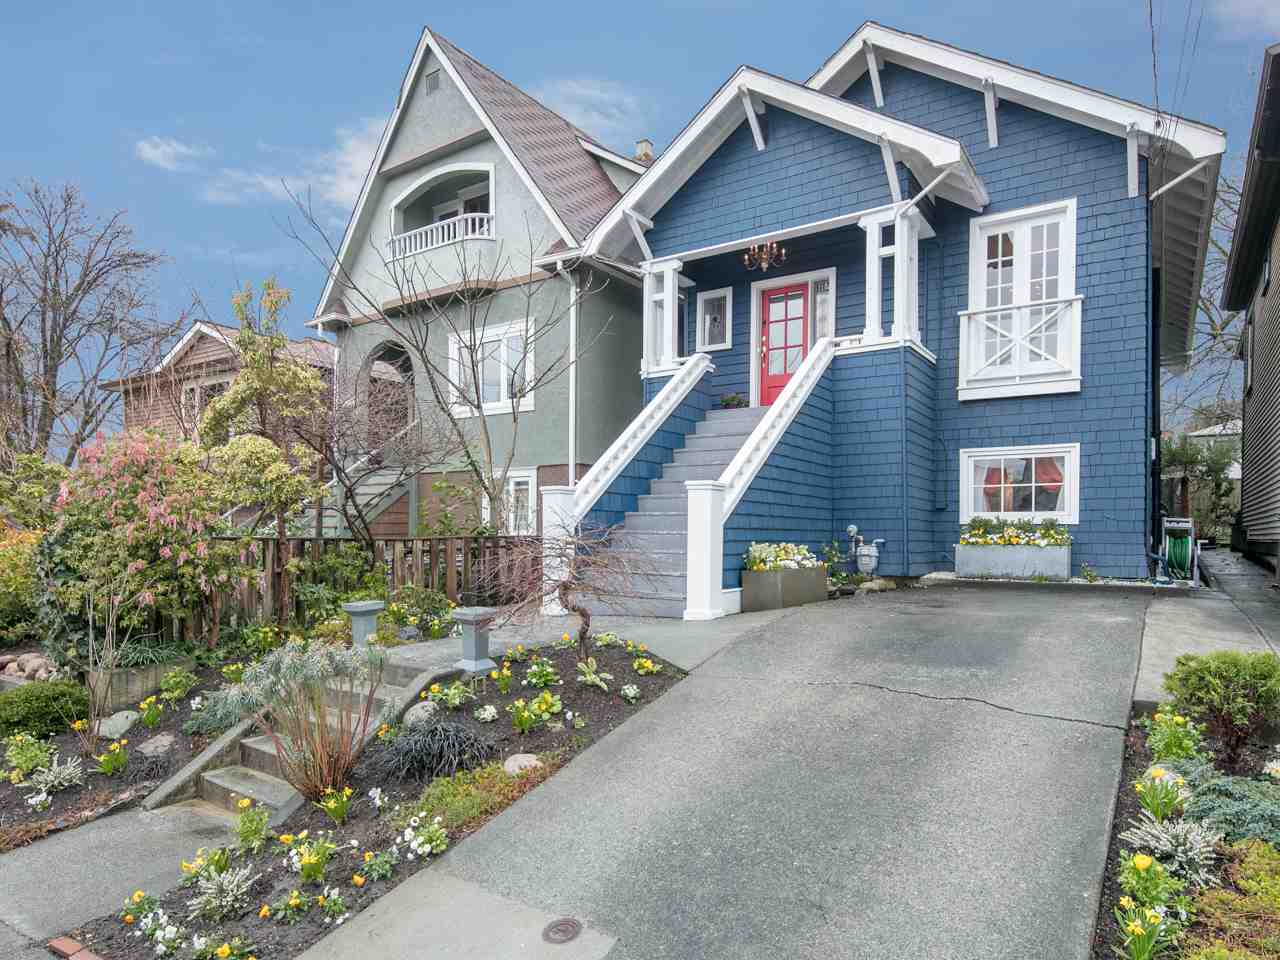 Main Photo: 1112 ROSE Street in Vancouver: Grandview VE House for sale (Vancouver East)  : MLS(r) # R2149737